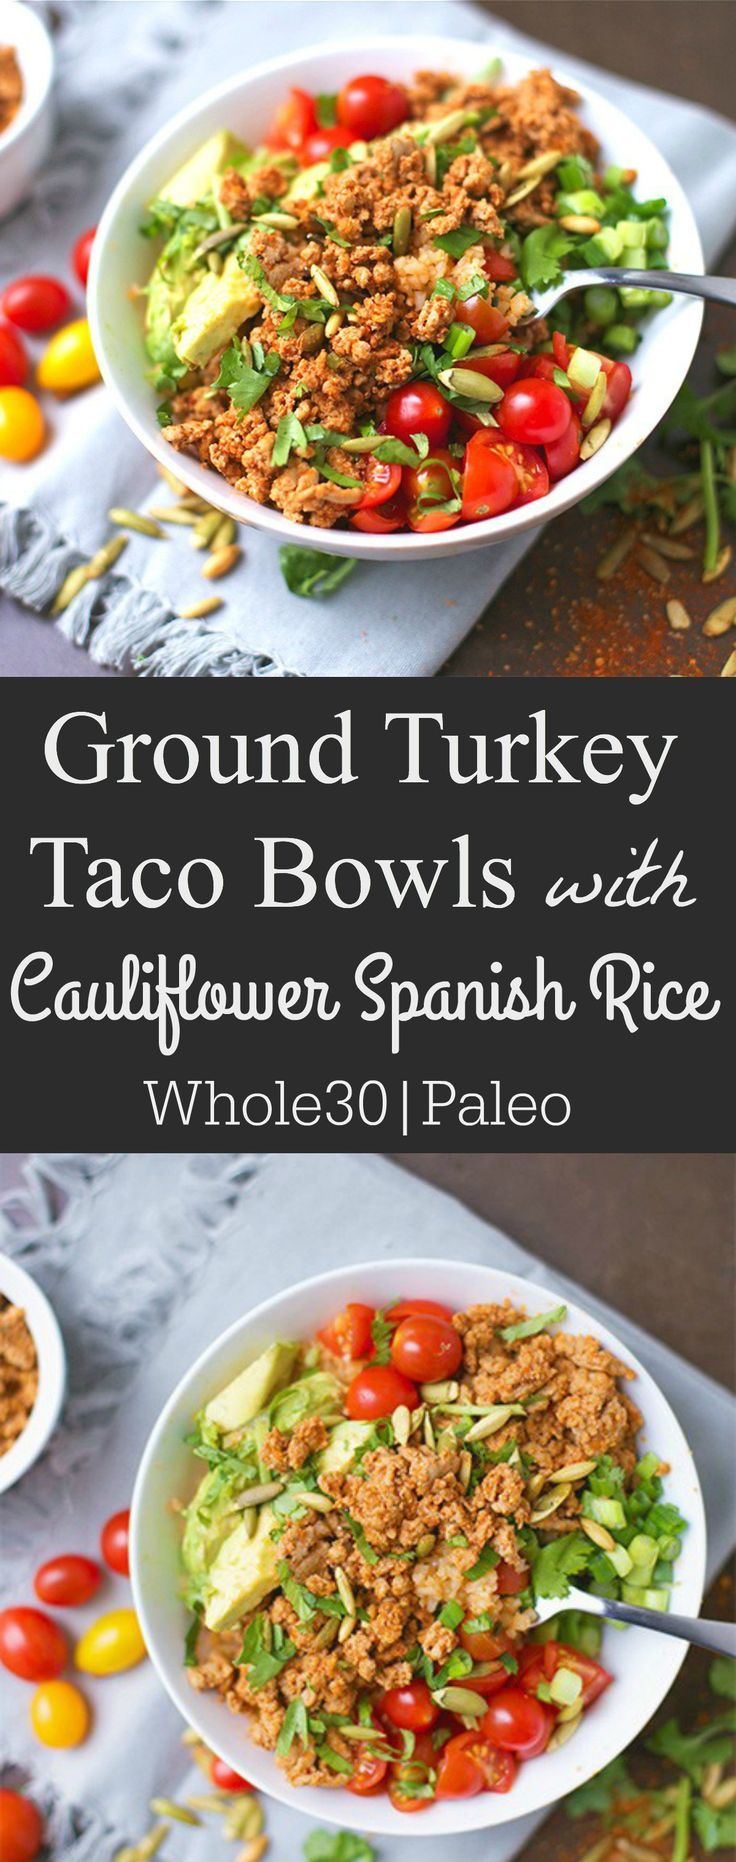 These simple Ground Turkey Taco Bowls come together with cauliflower Spanish Rice and all of your favorite taco toppings! A wonderful and nutritious way to enjoy your tacos. Grain-free, Paleo, and Whole30 approved! Hello Taco Tuesday, my favorite day of the week. You taste absolutely amazing a million different ways, but today we're talking about...Read More »